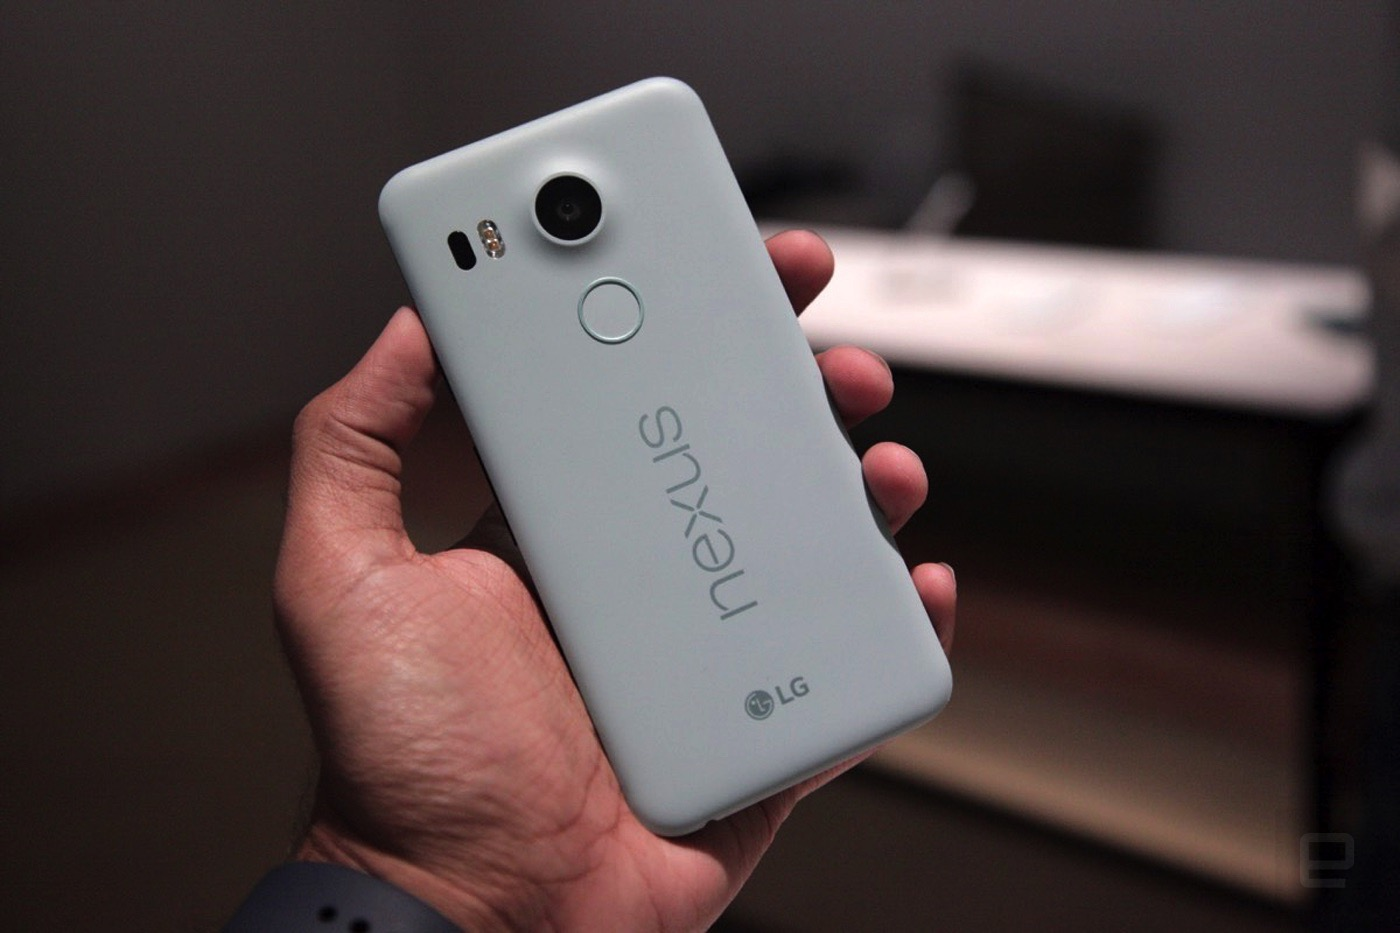 Google drops the Nexus 5X price again, to $299